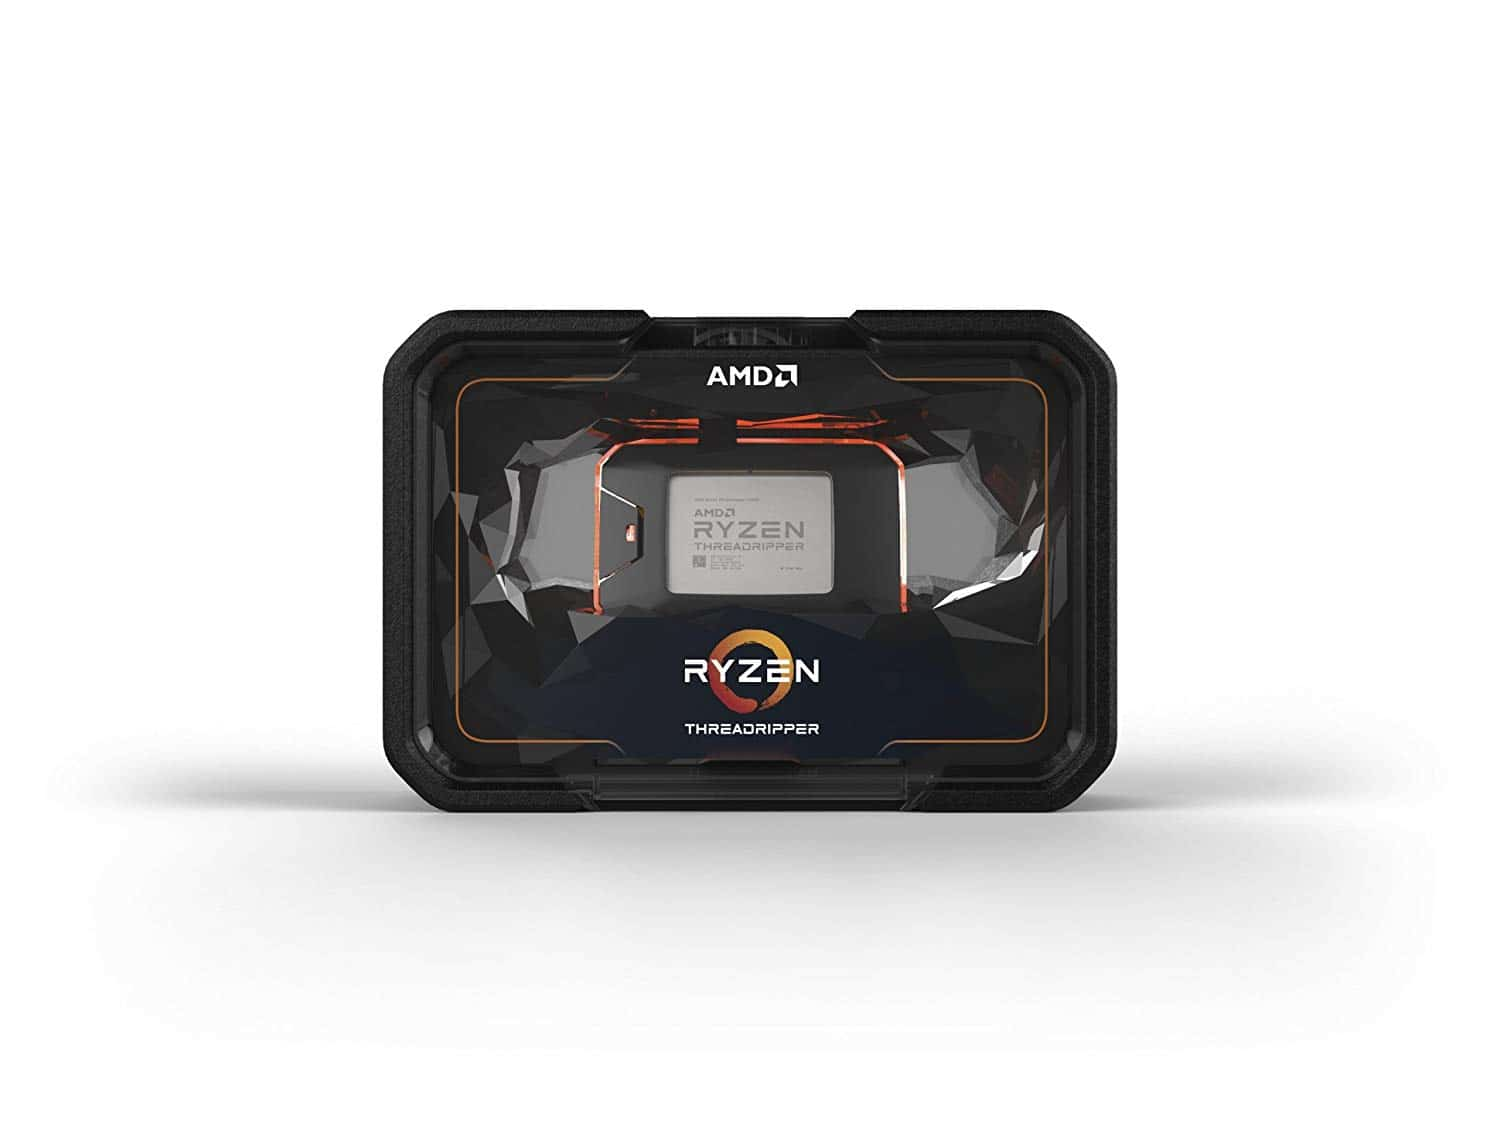 AMD Ryzen Threadripper 2 2990WX, TR4, 3.0GHz (4.2 Turbo), 32-Core, 250W, 80MB Cache, 12nm, No Graphics, NO HEATSINK/FAN